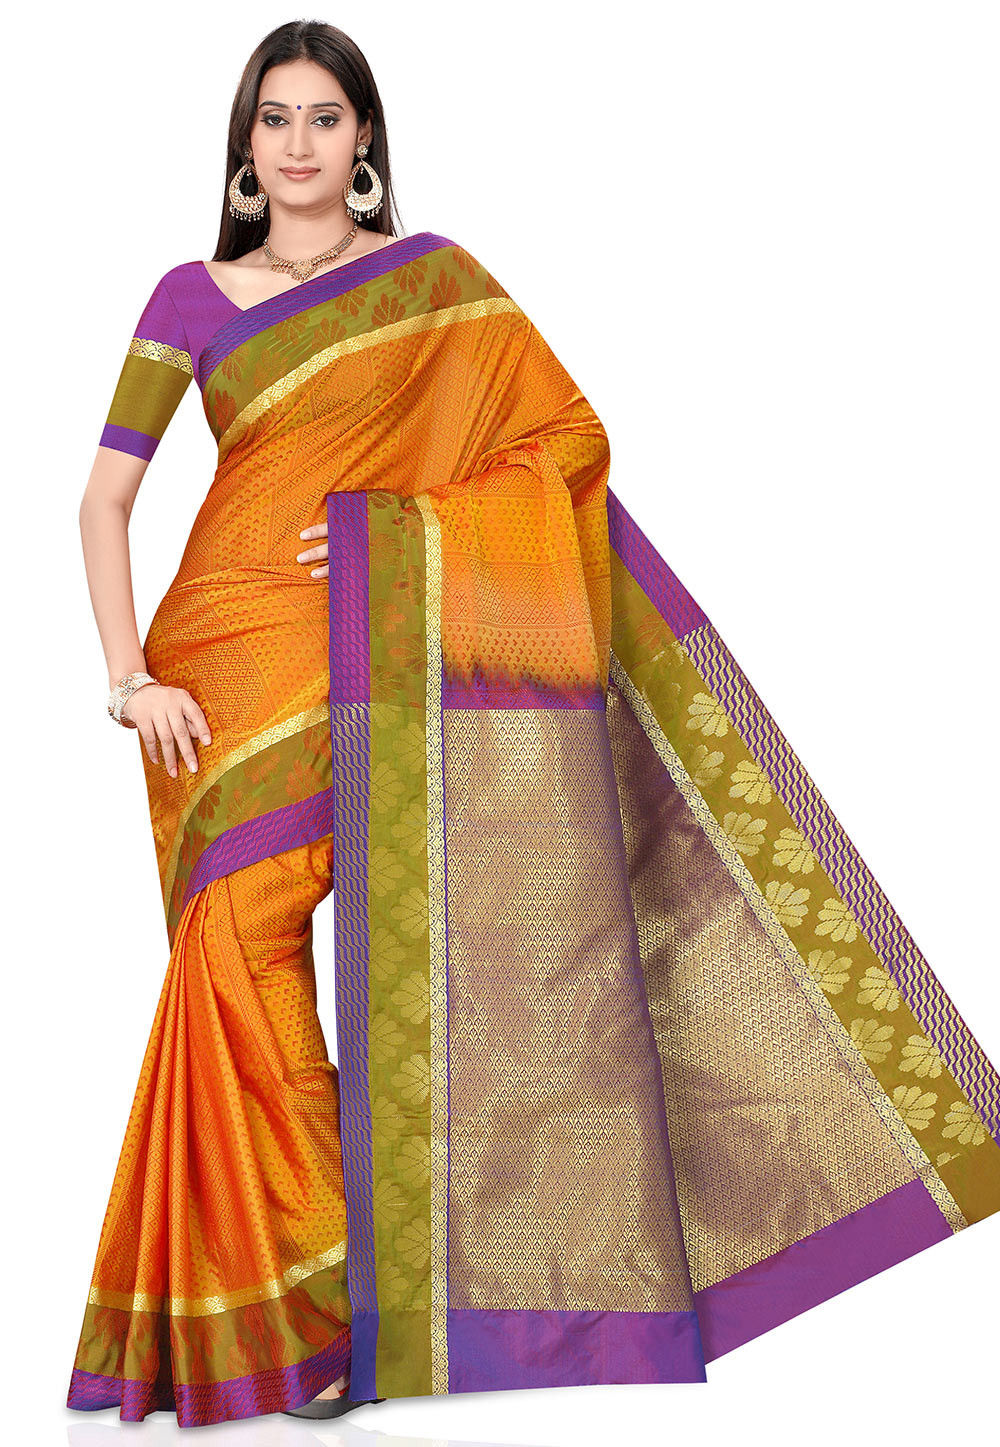 Woven Kanchipuram Saree in Orange